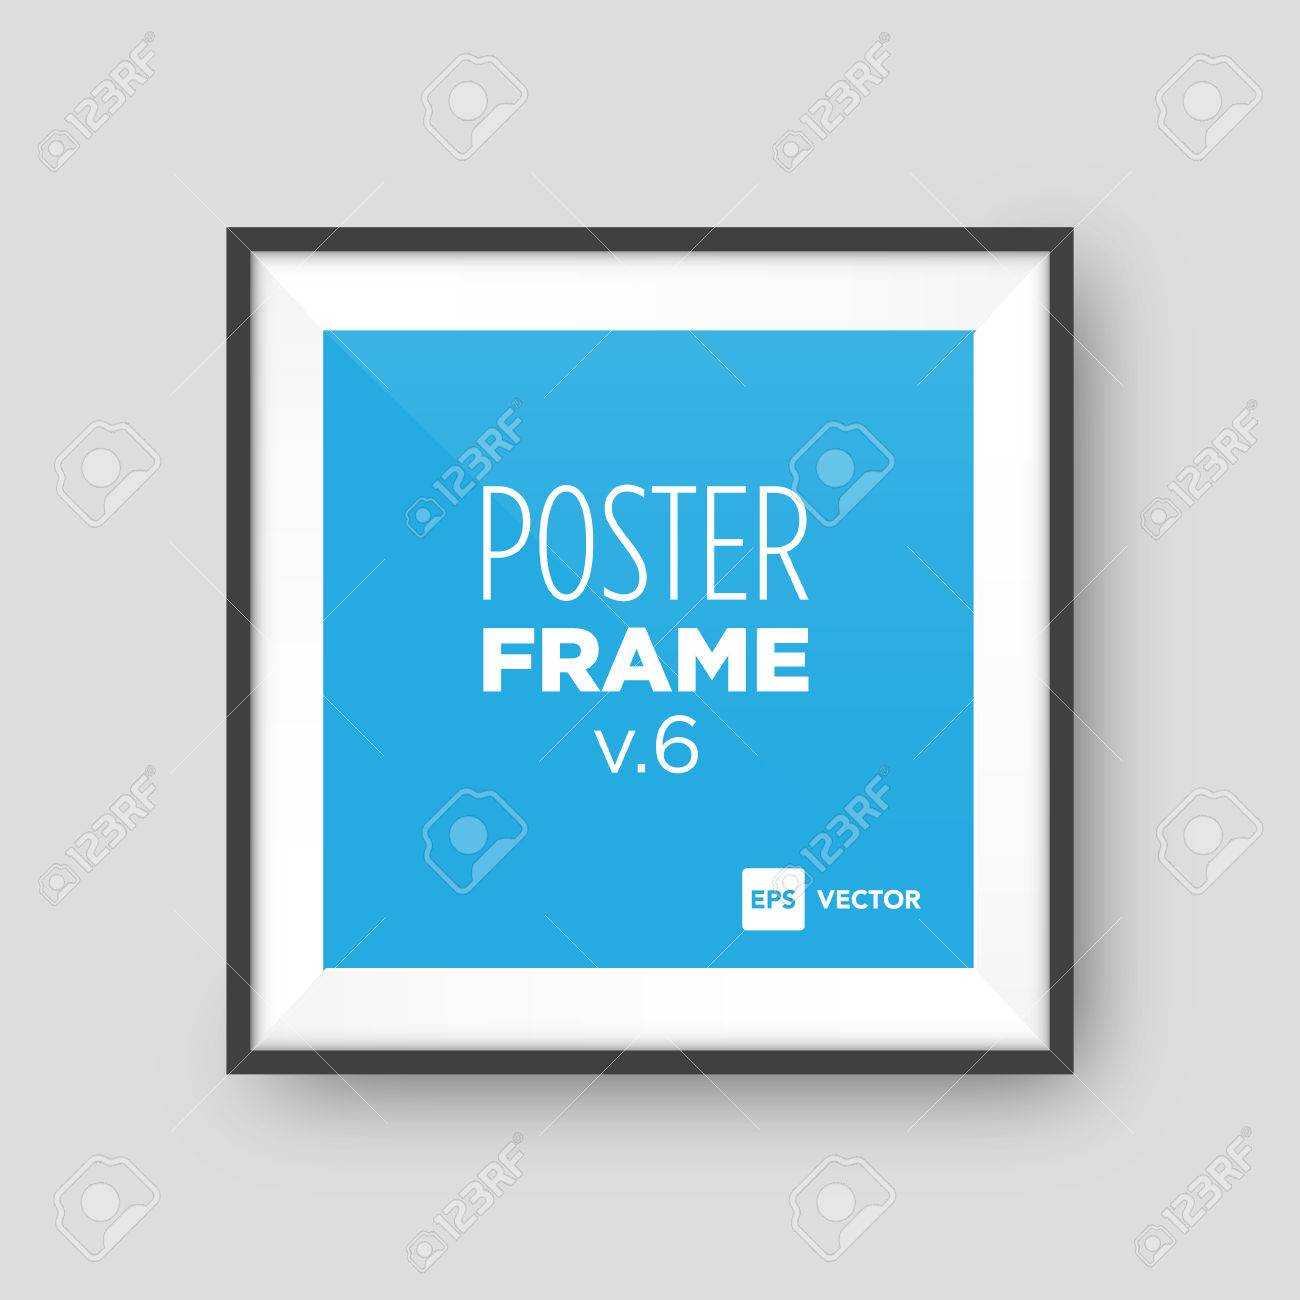 Poster Mockup Template With Black Square Frame Royalty Free